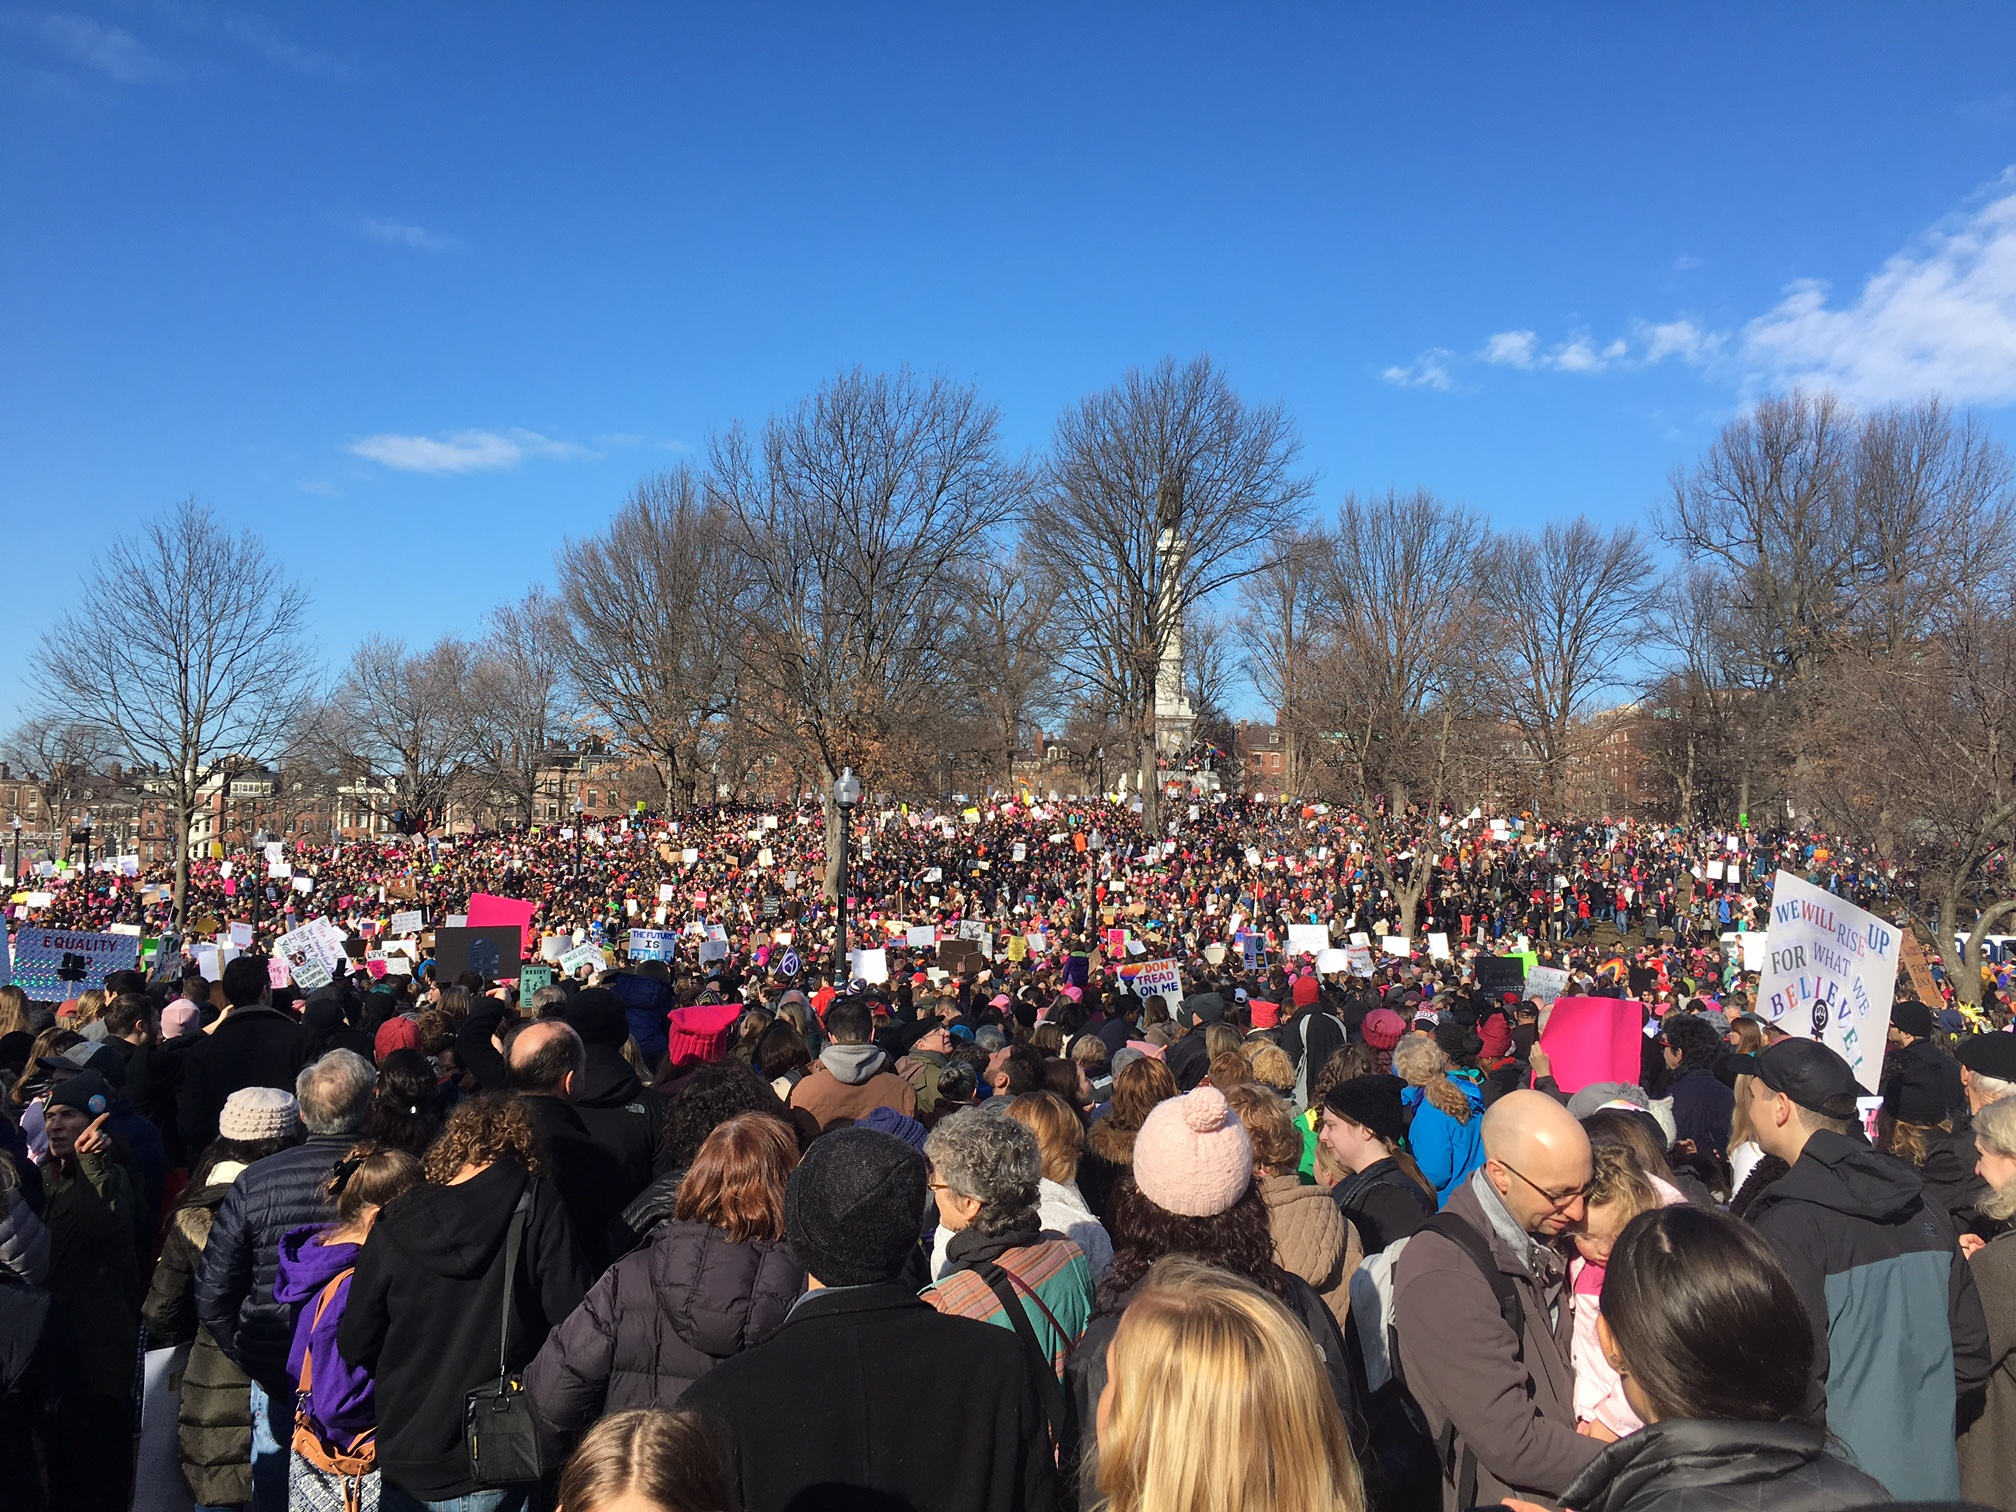 An estimated 37,000 people participated in the Women's March in Boston on Saturday. (Photo by Kelly Kasulis/GroundTruth)